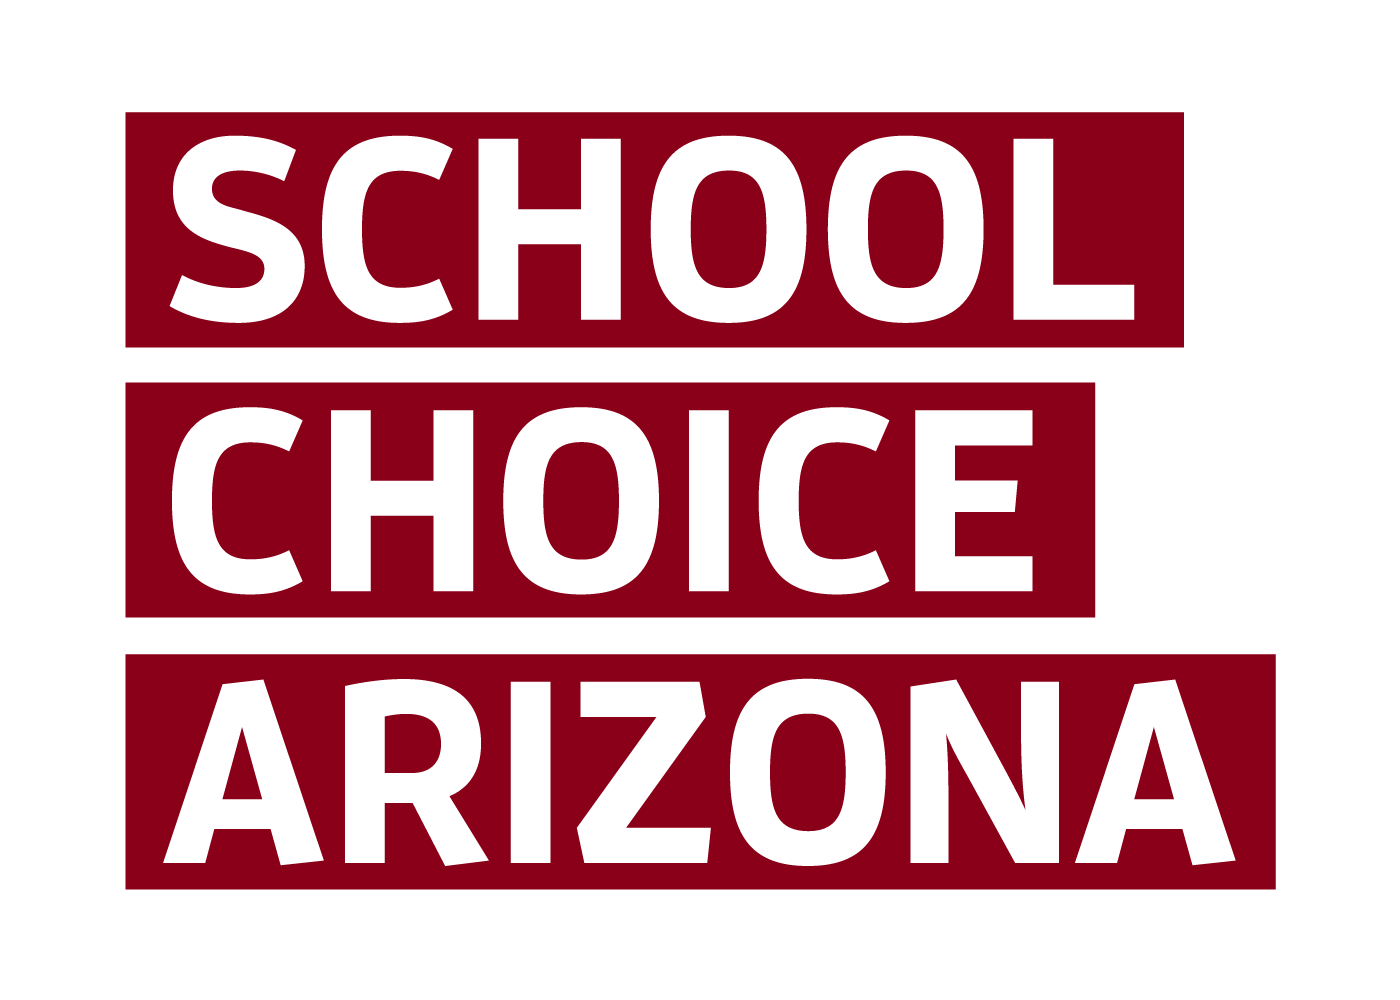 School Choice Arizona